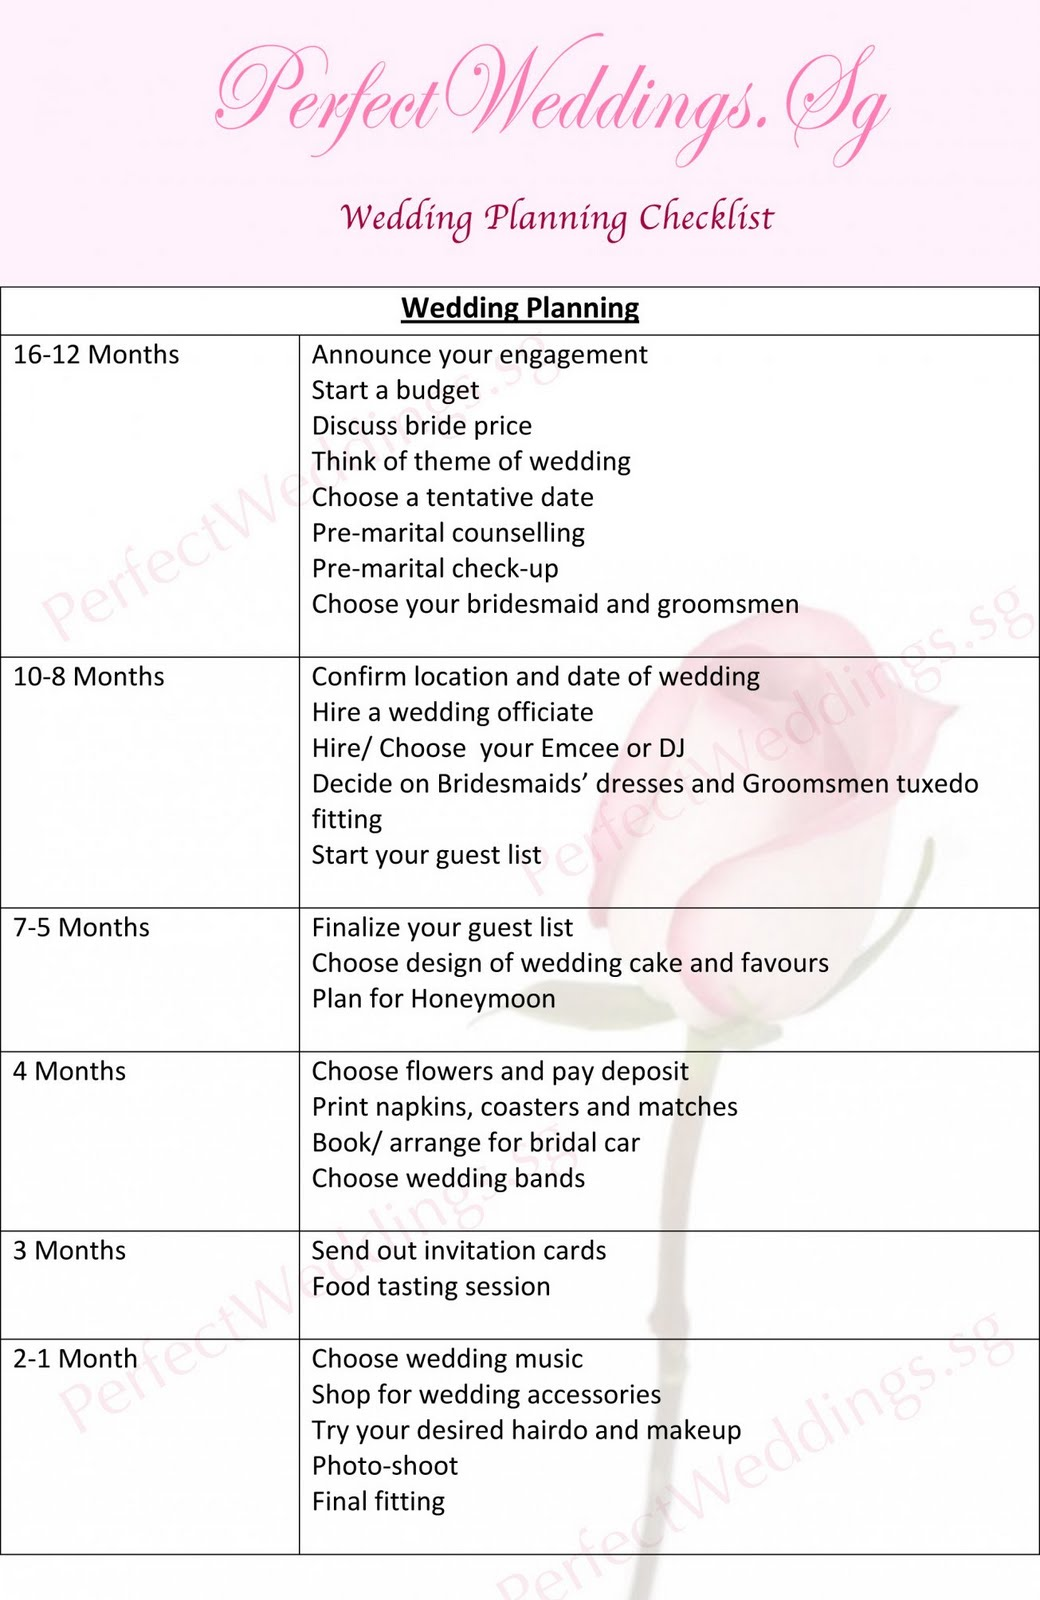 Je t'aime: Wedding Planner Checklist